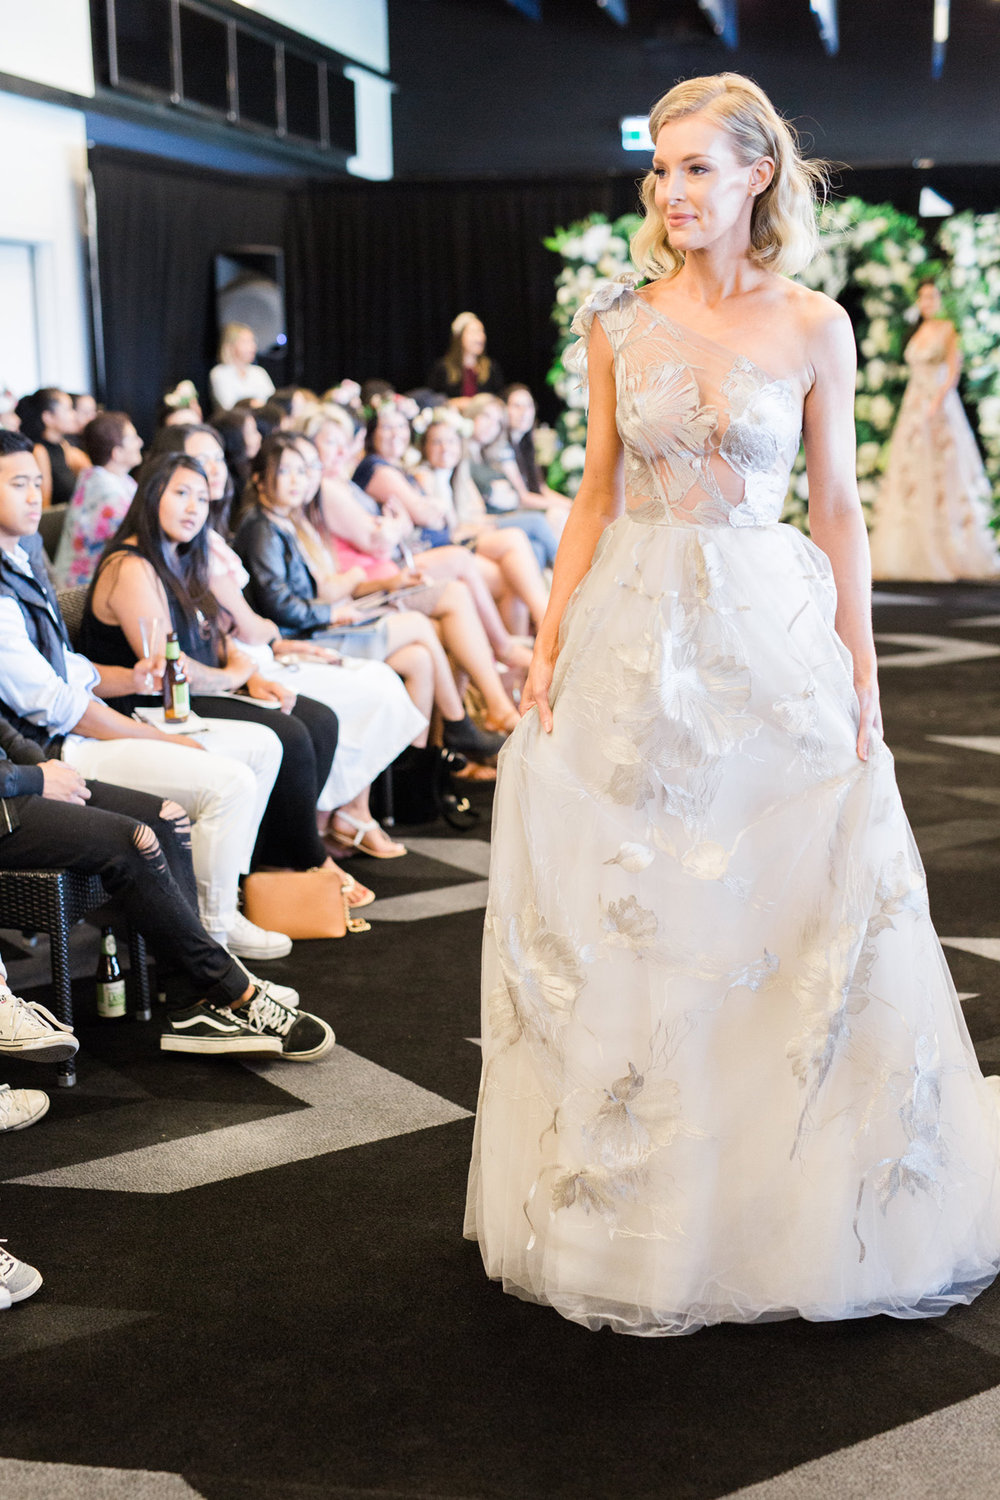 Love-Wedding-Festival-Sydney-Wedding-Gown-Angela-Osagie-8.jpg